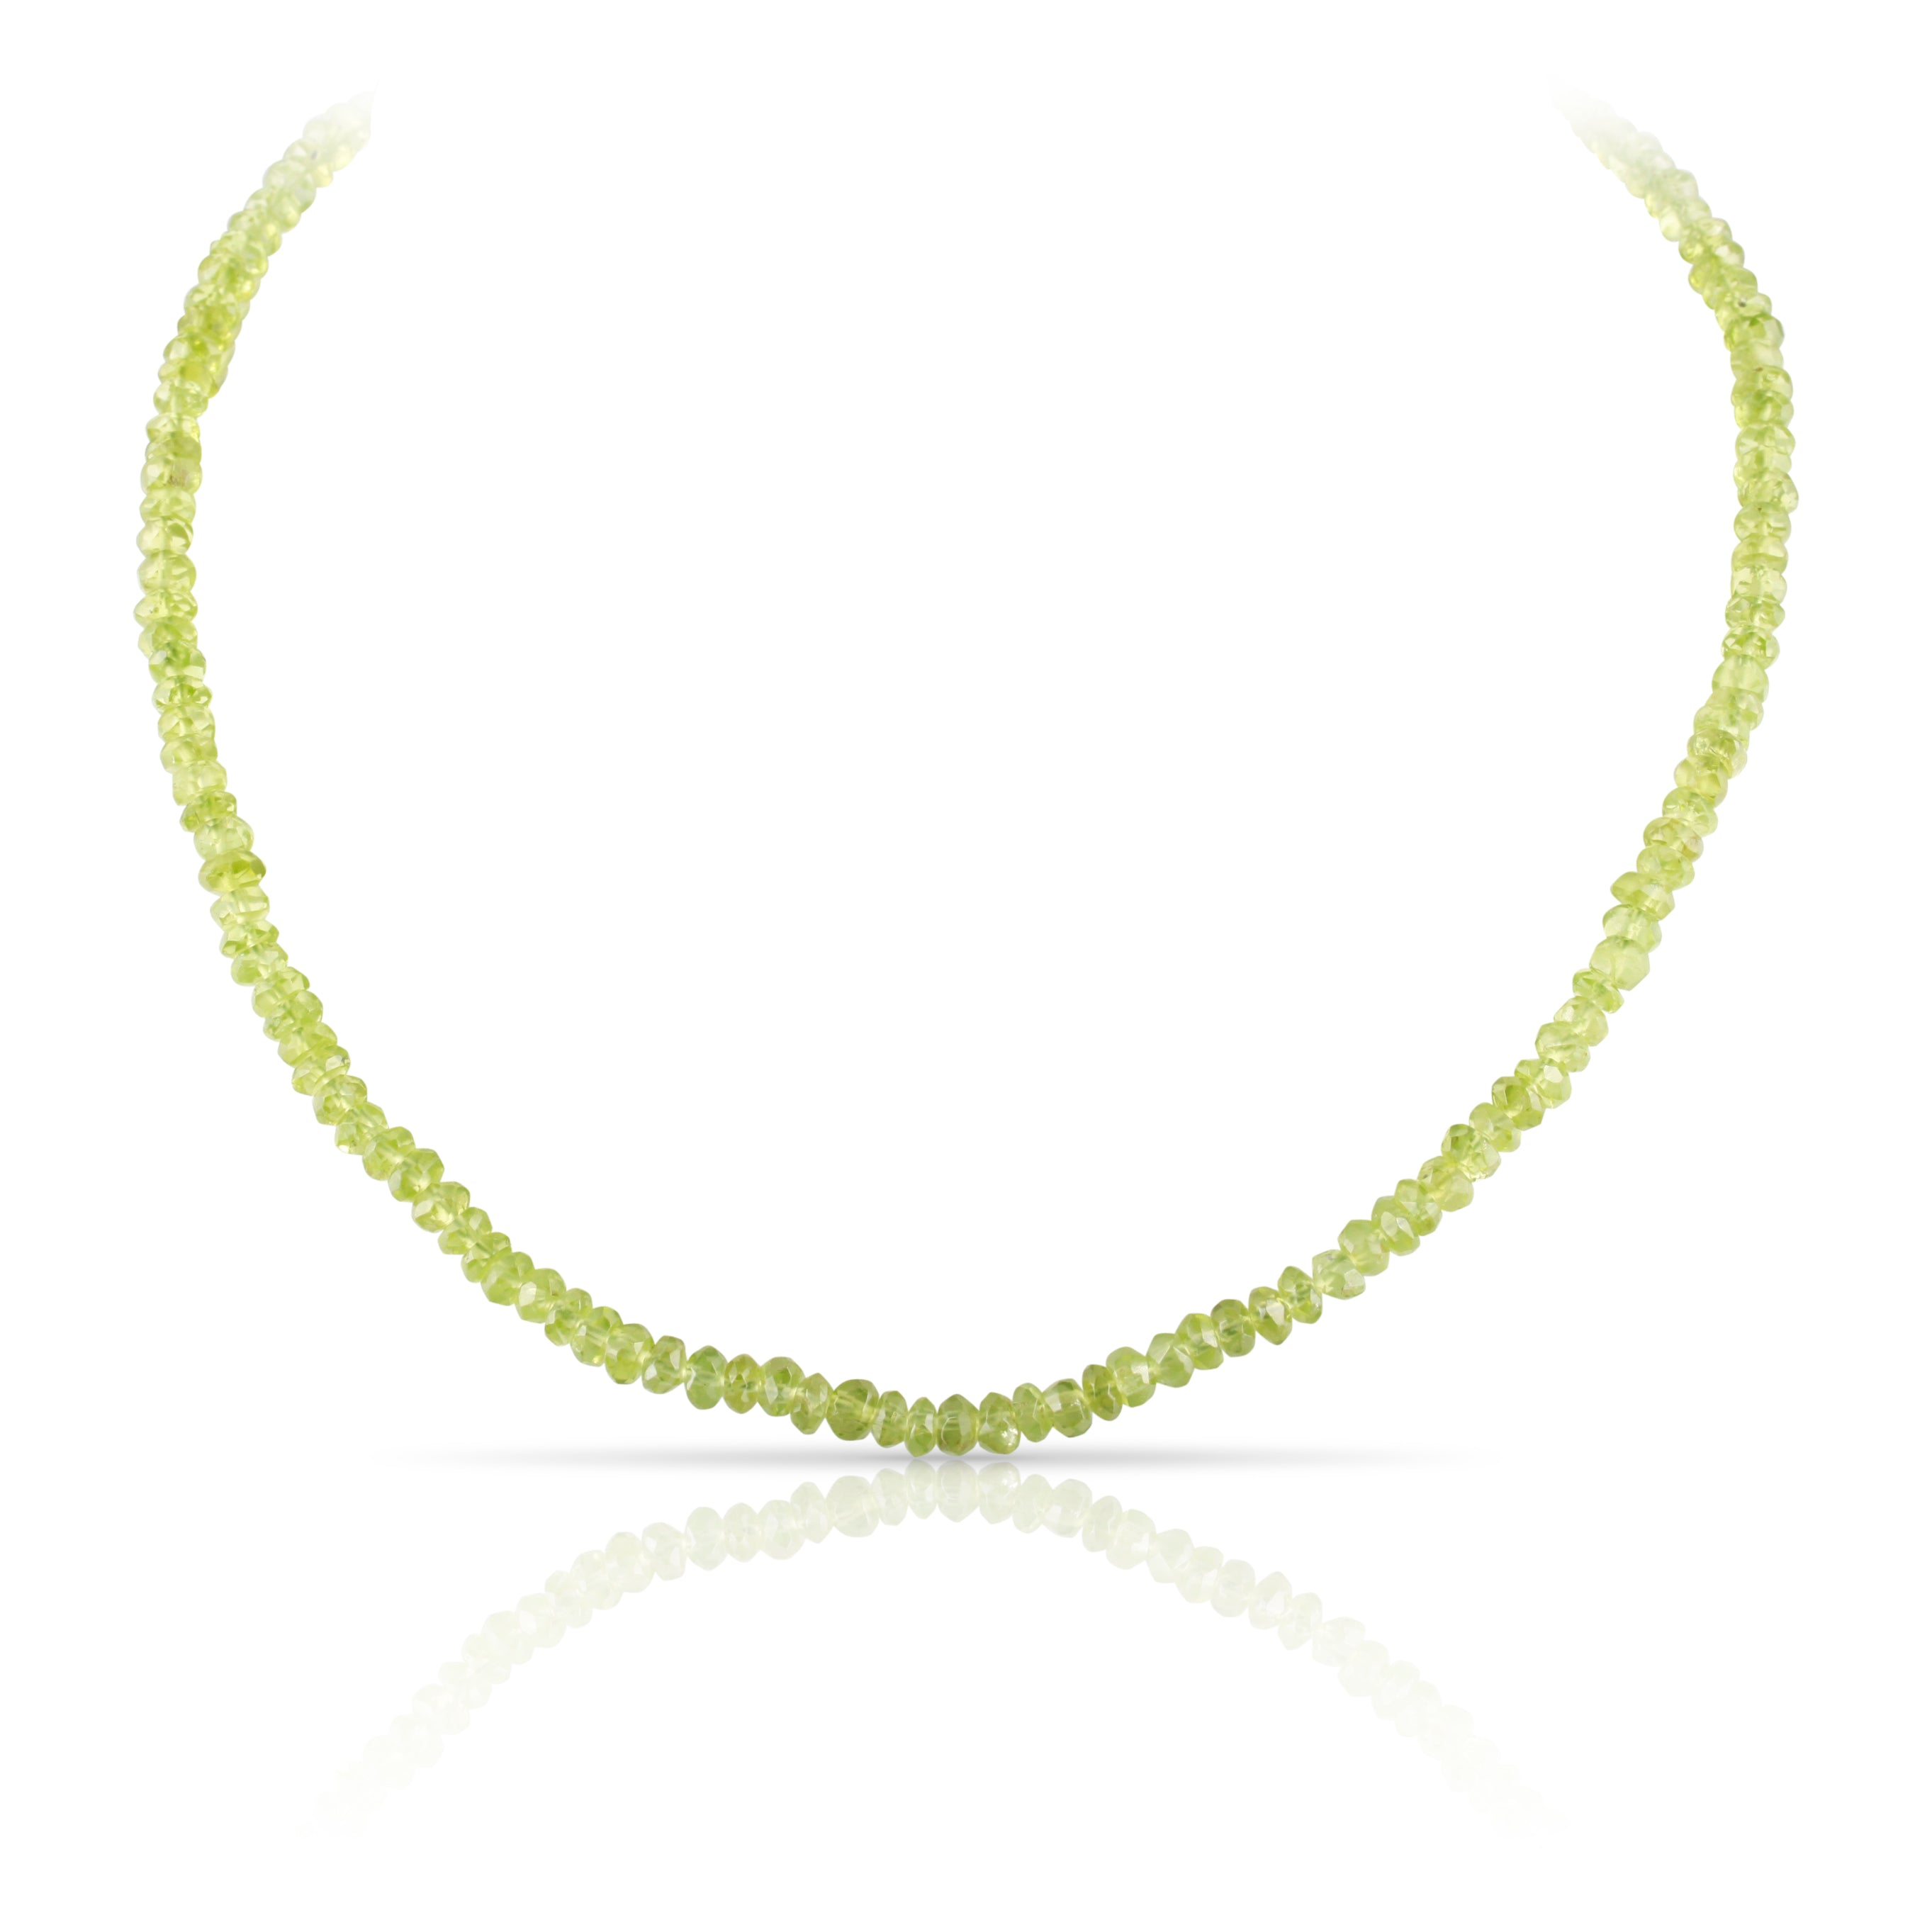 Peridot Bead Necklace | The Alistair